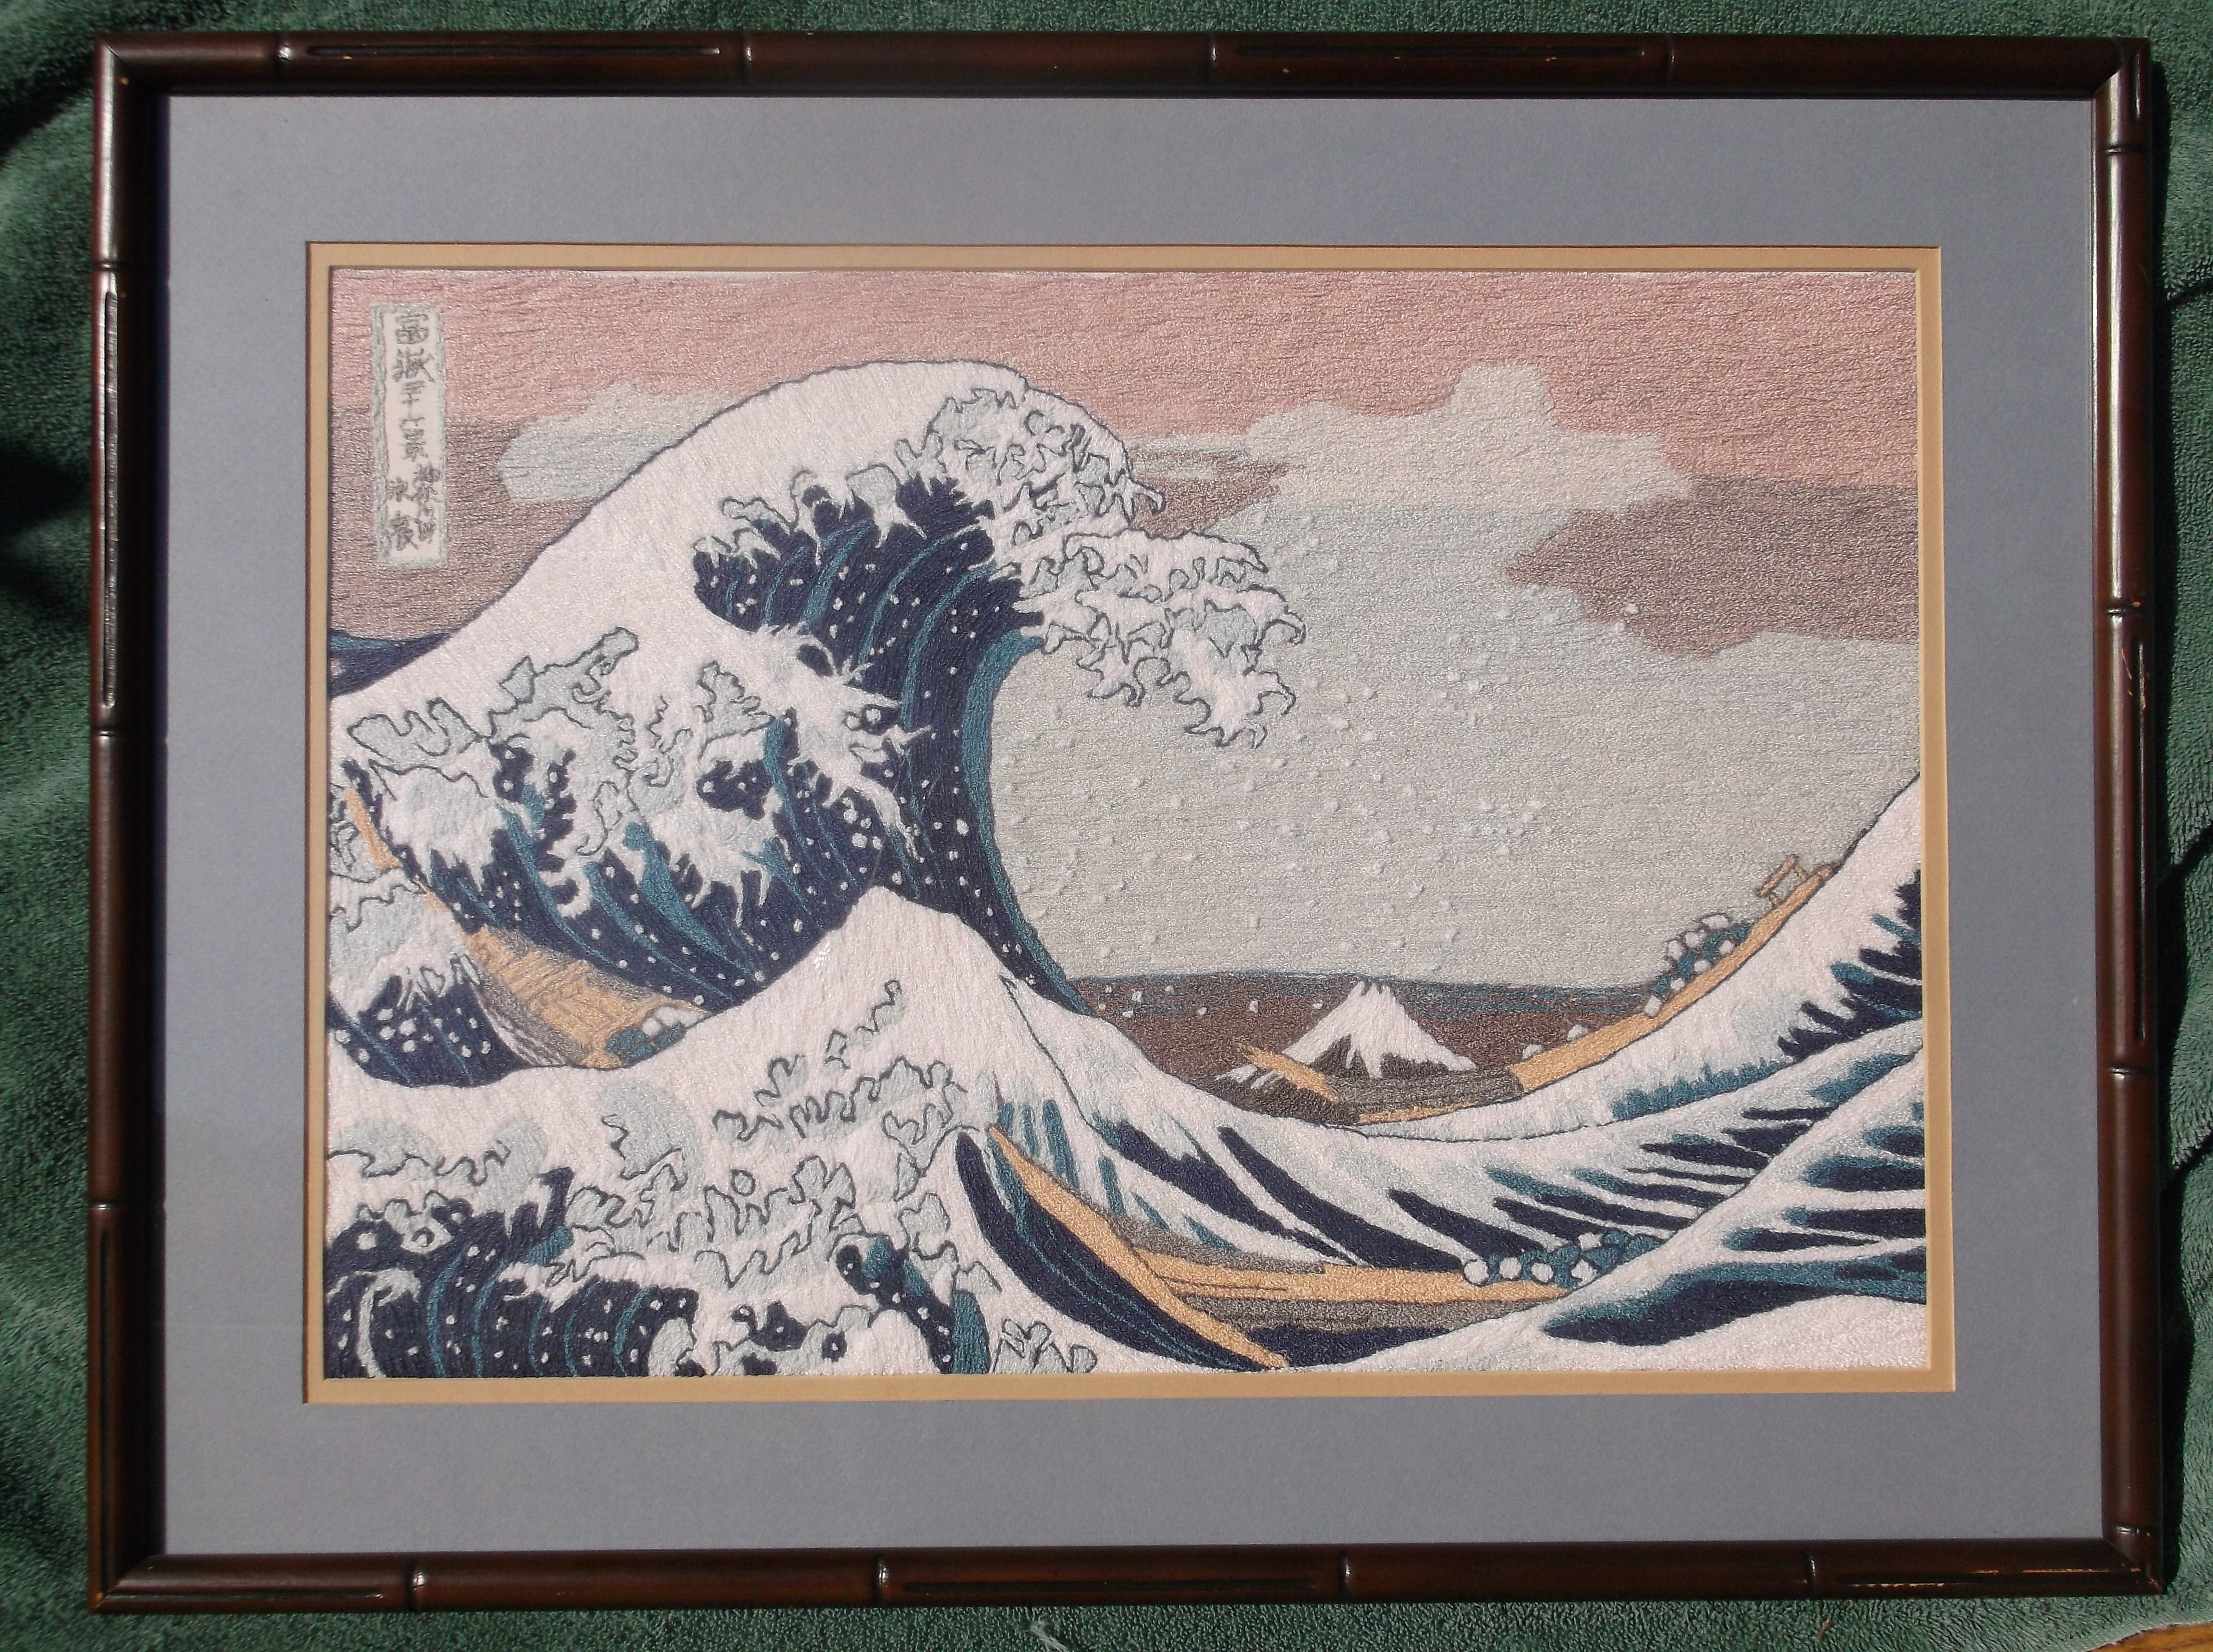 The Great Wave needlepoint